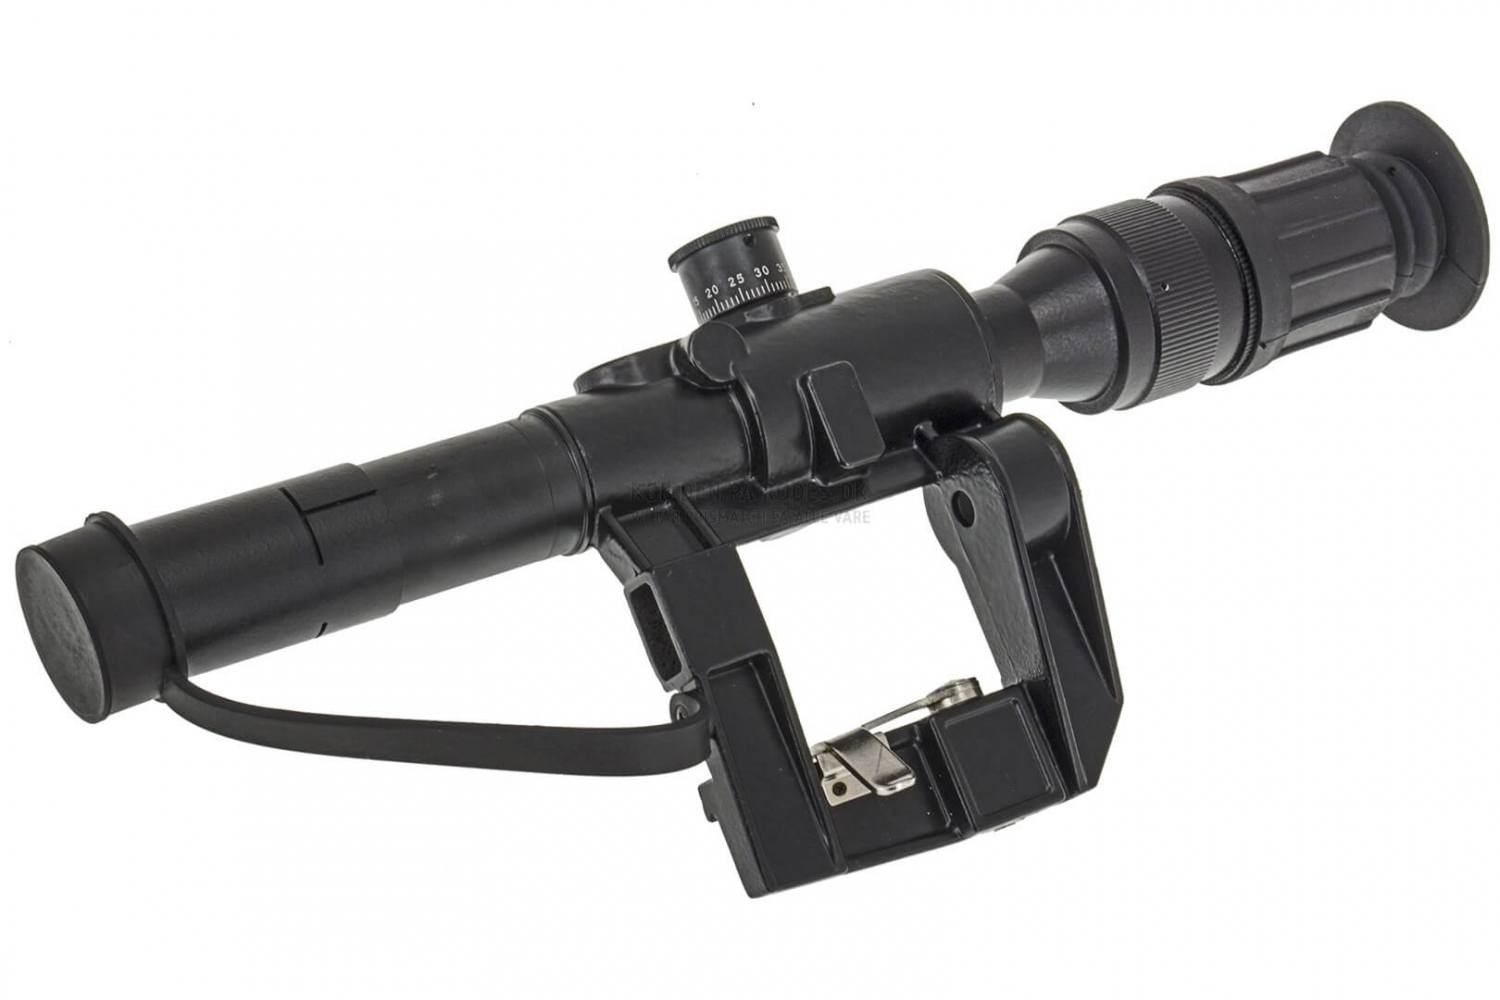 Image of 4X26 Ak scope